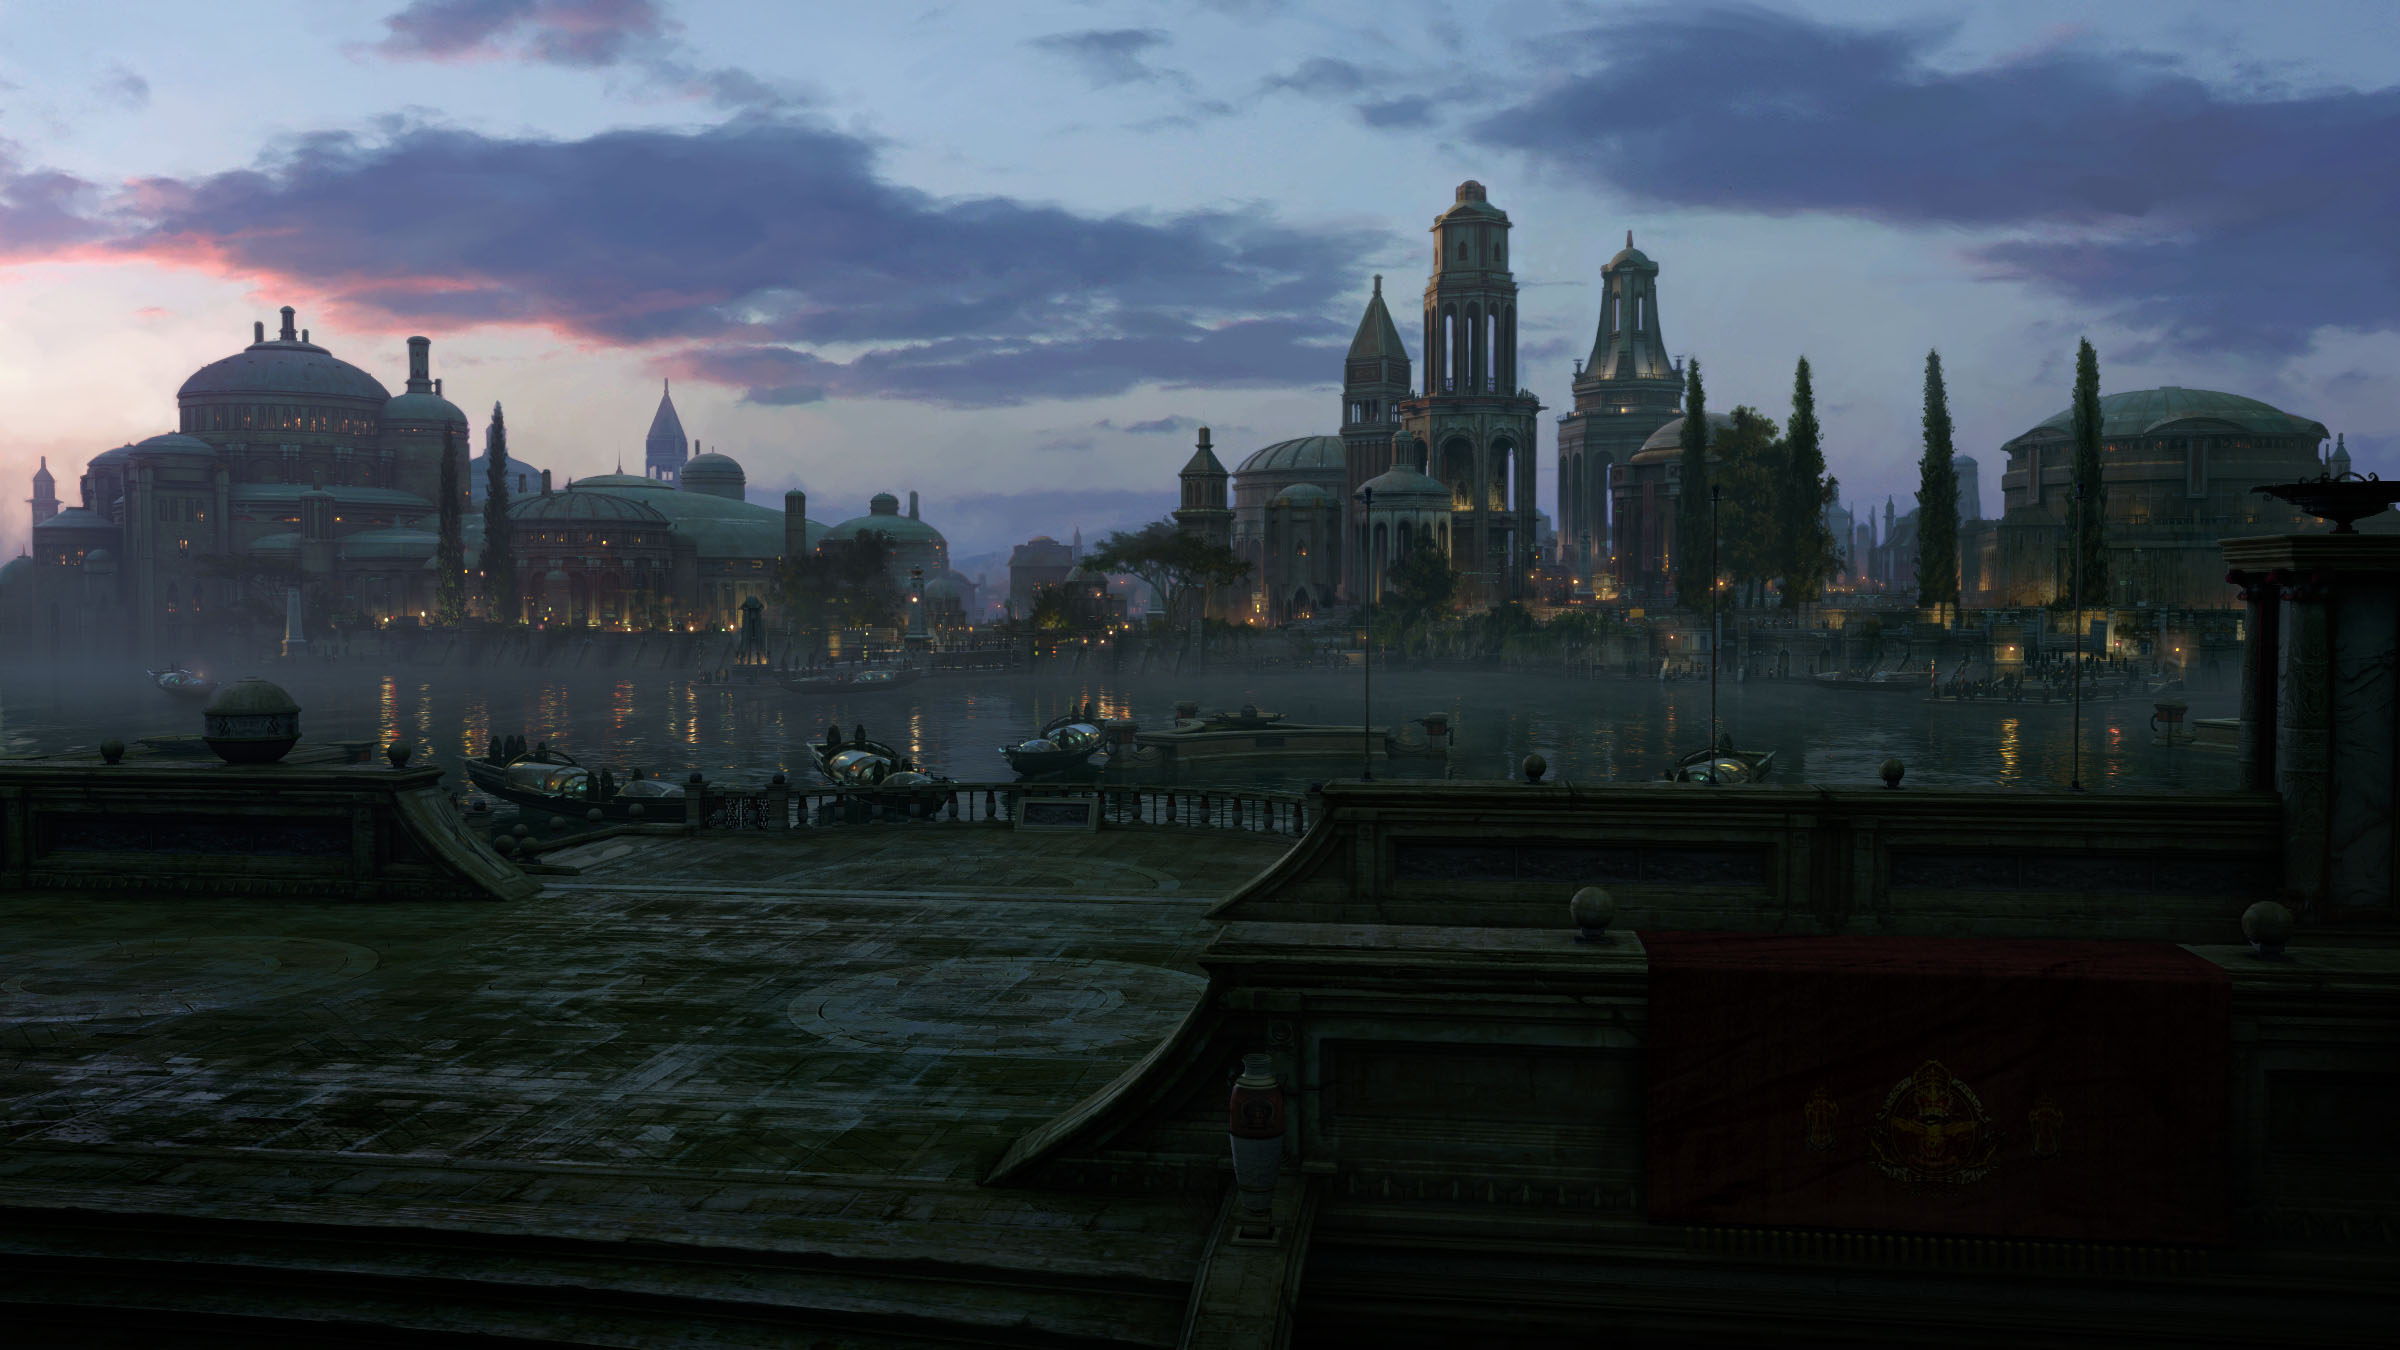 Landscape Hd Naboo 2400 1350 Star Wars Wallpaper 24868166